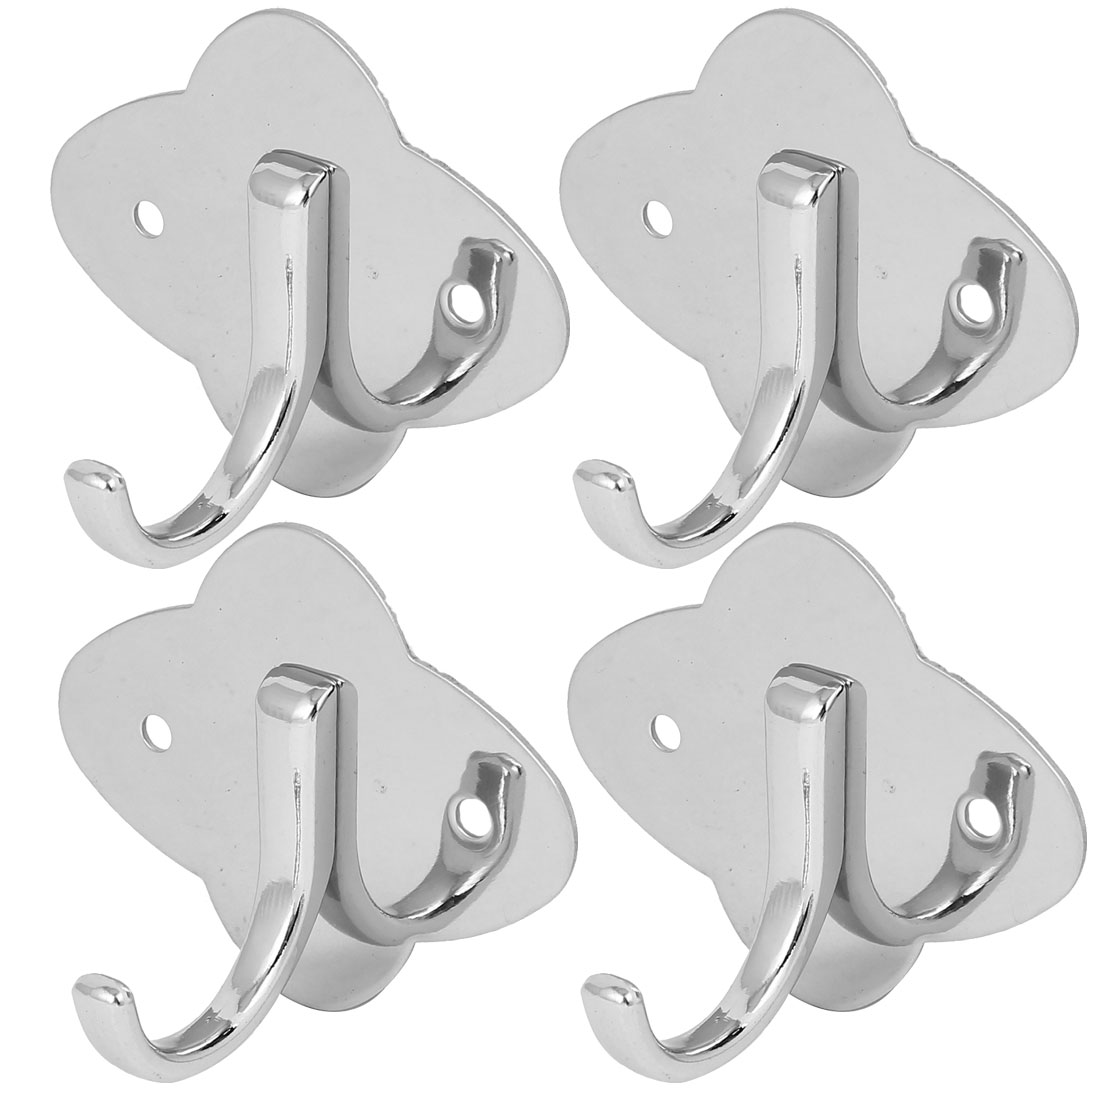 Foyer Bathroom Door Bag Key Single Hanger Stainless Steel Wall Mount Hook Silver Tone 4pcs